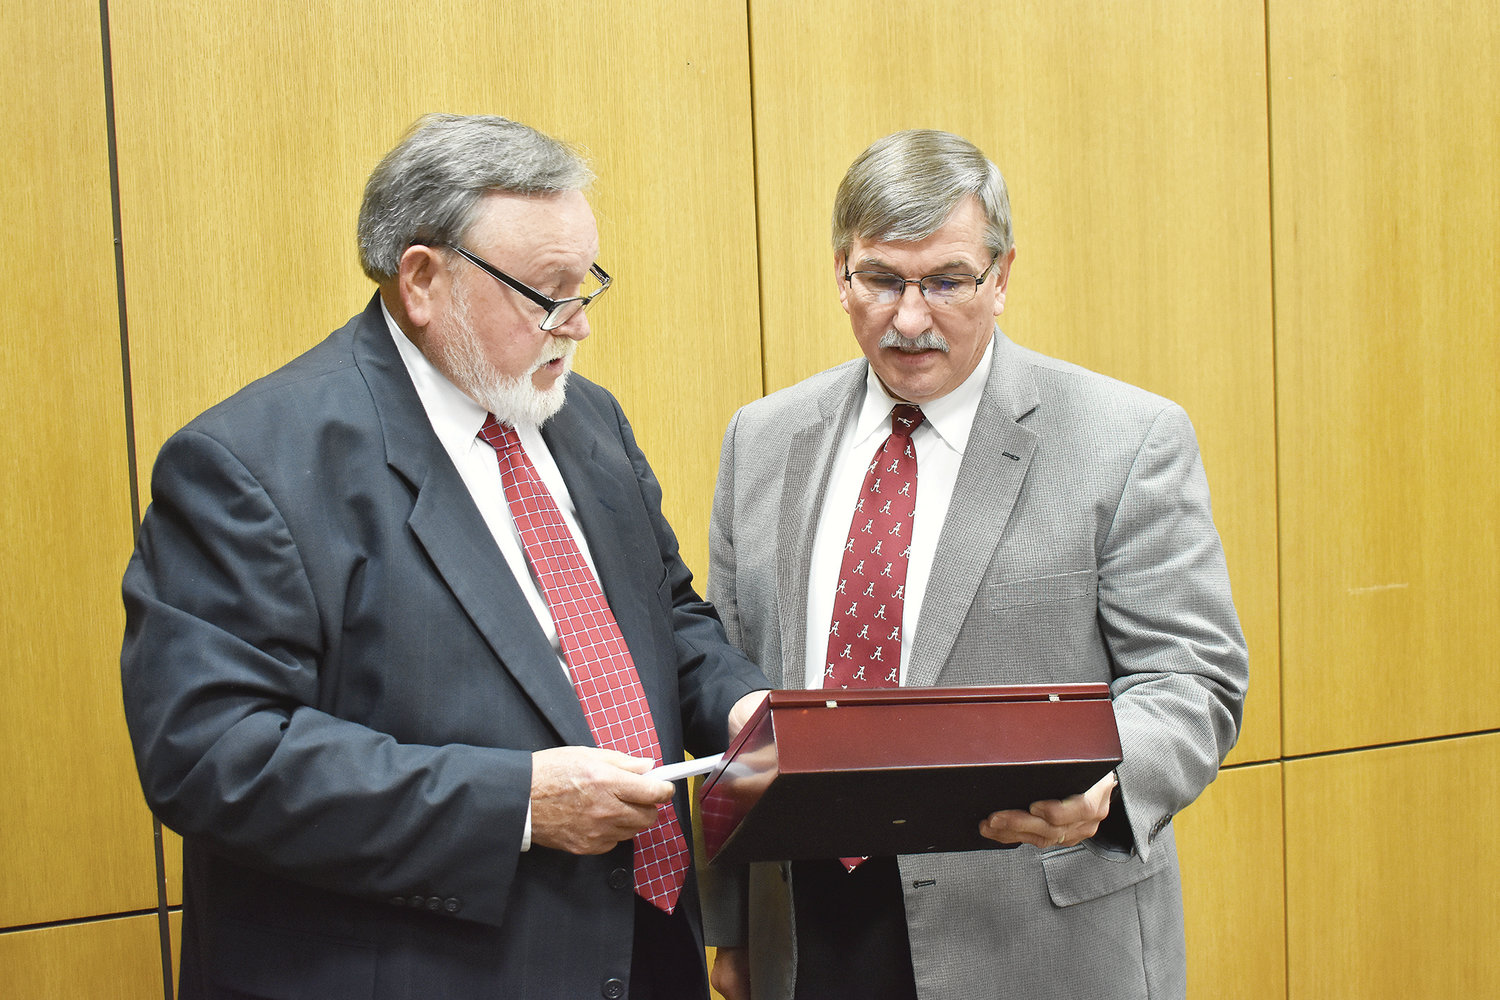 At Monday's Walker County Commission meeting, Chairman Jerry Bishop presented a ceremonial gavel to retiring Probate Judge Rick Allison in recognition of his 24 years of service in that position. Allison showed off the gavel to other commissioners, who all congratulated him for his service, and received a standing ovation at the meeting after giving some brief remarks. A. Lee Tucker will be sworn in by Allison as the new probate judge on the front steps of the Walker County Courthouse on Monday, Jan. 14, at noon, with Circuit Judge Hoyt Elliott's courtroom serving as a rain location.